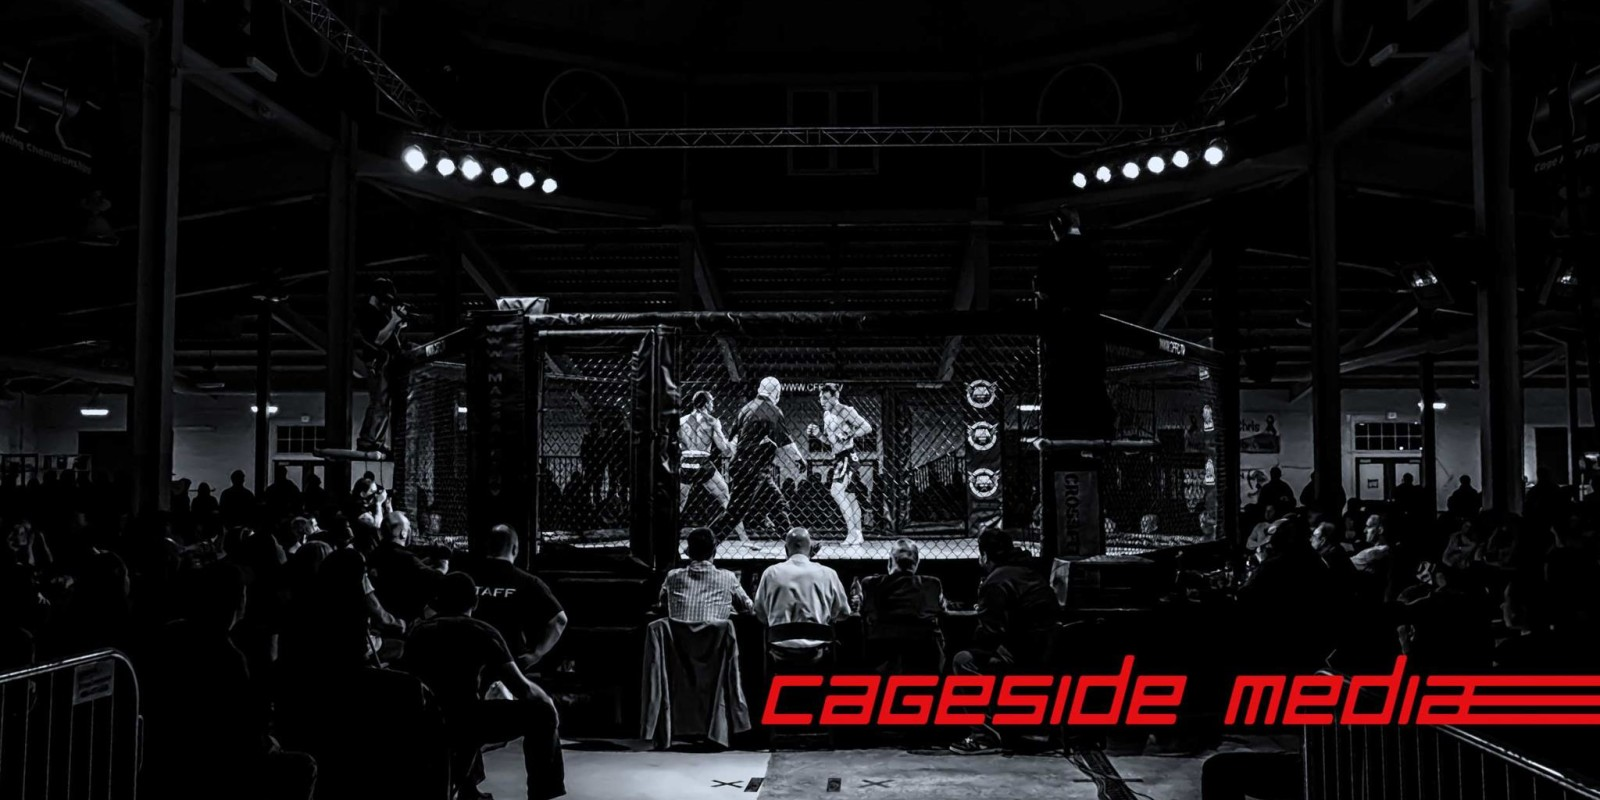 cageside media